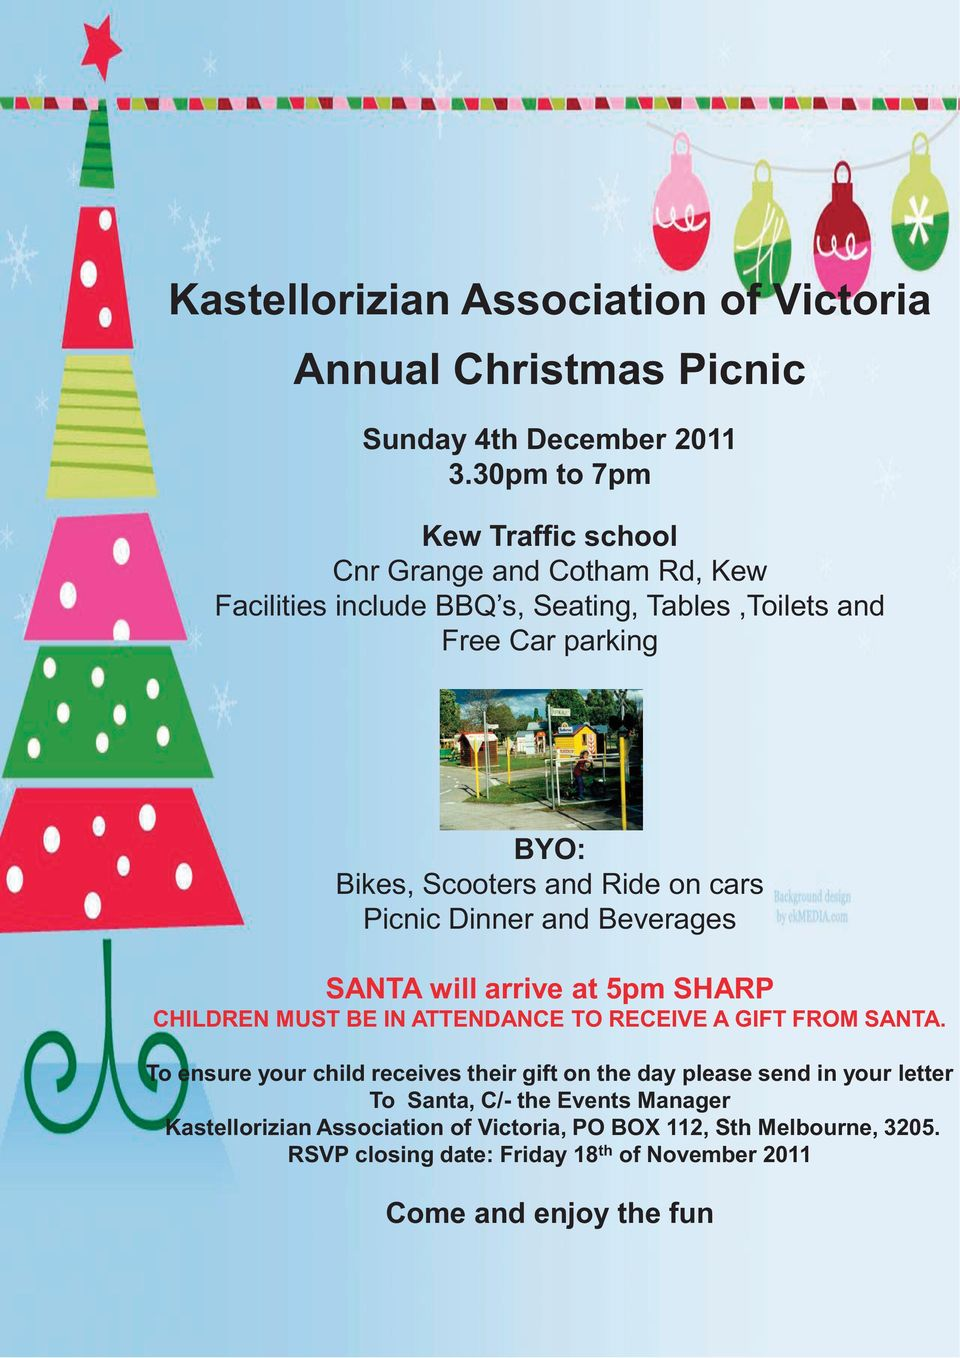 Ride on cars Picnic Dinner and Beverages SANTA will arrive at 5pm SHARP CHILDREN MUST BE IN ATTENDANCE TO RECEIVE A GIFT FROM SANTA.